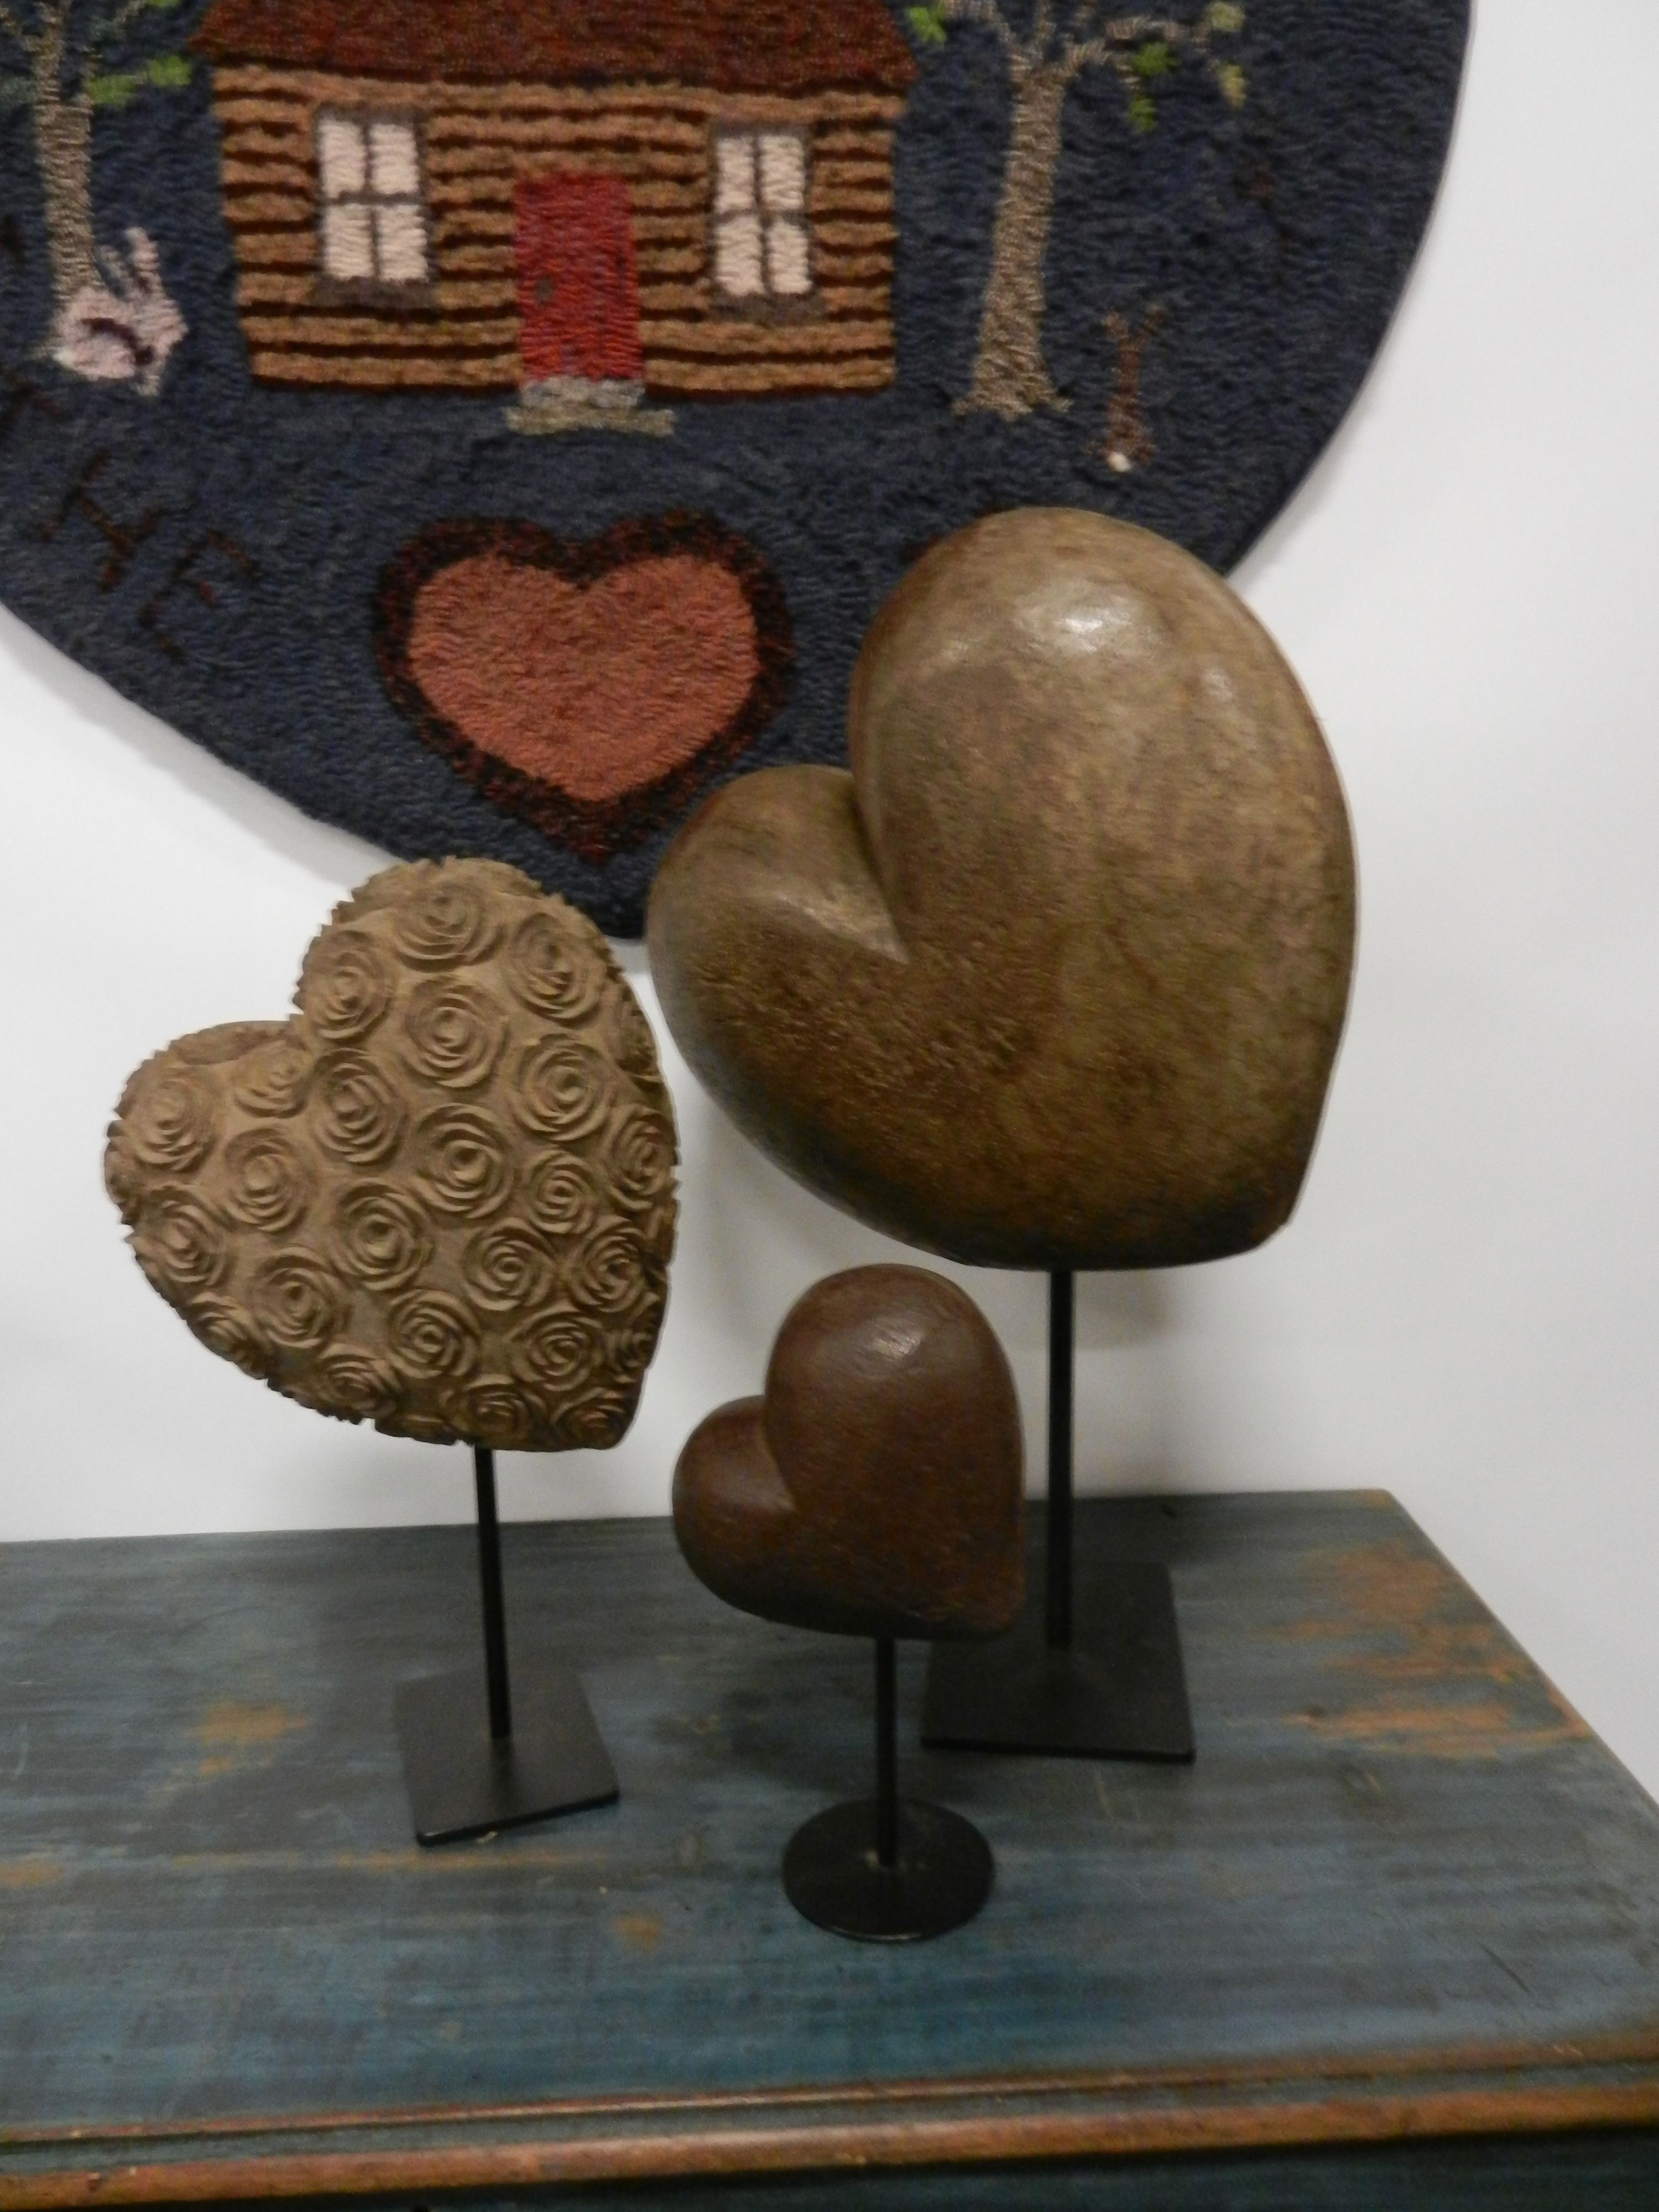 Carved Wood Hearts Mounted And Displayed In Front Of A Heart Shaped Hooked Rug On A Primitive Blue Chest With Images Wooden Hearts Heart Art Wood Hearts